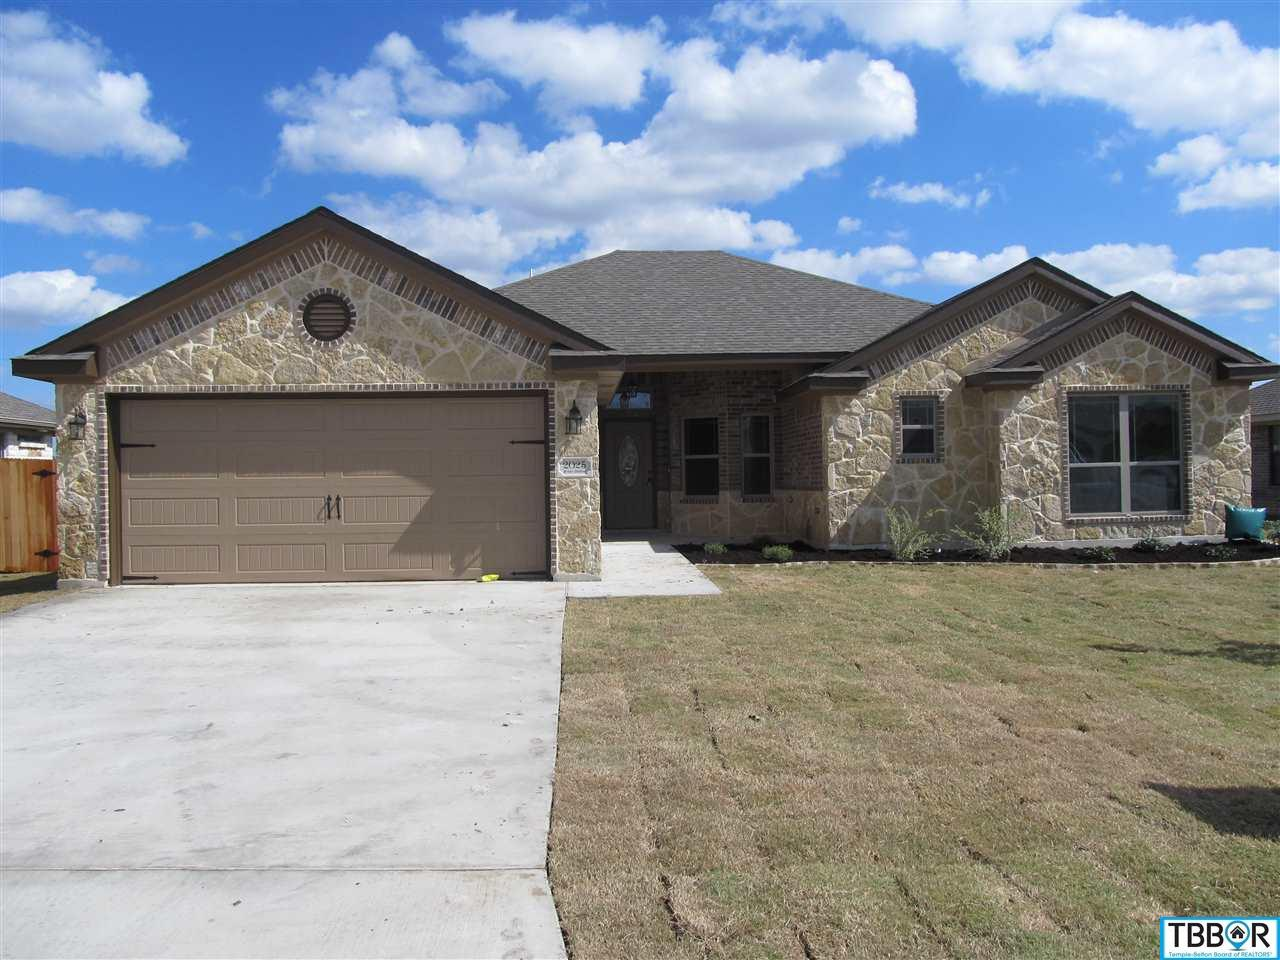 2025 Briar Hollow Drive, Temple TX 76502 - Photo 1